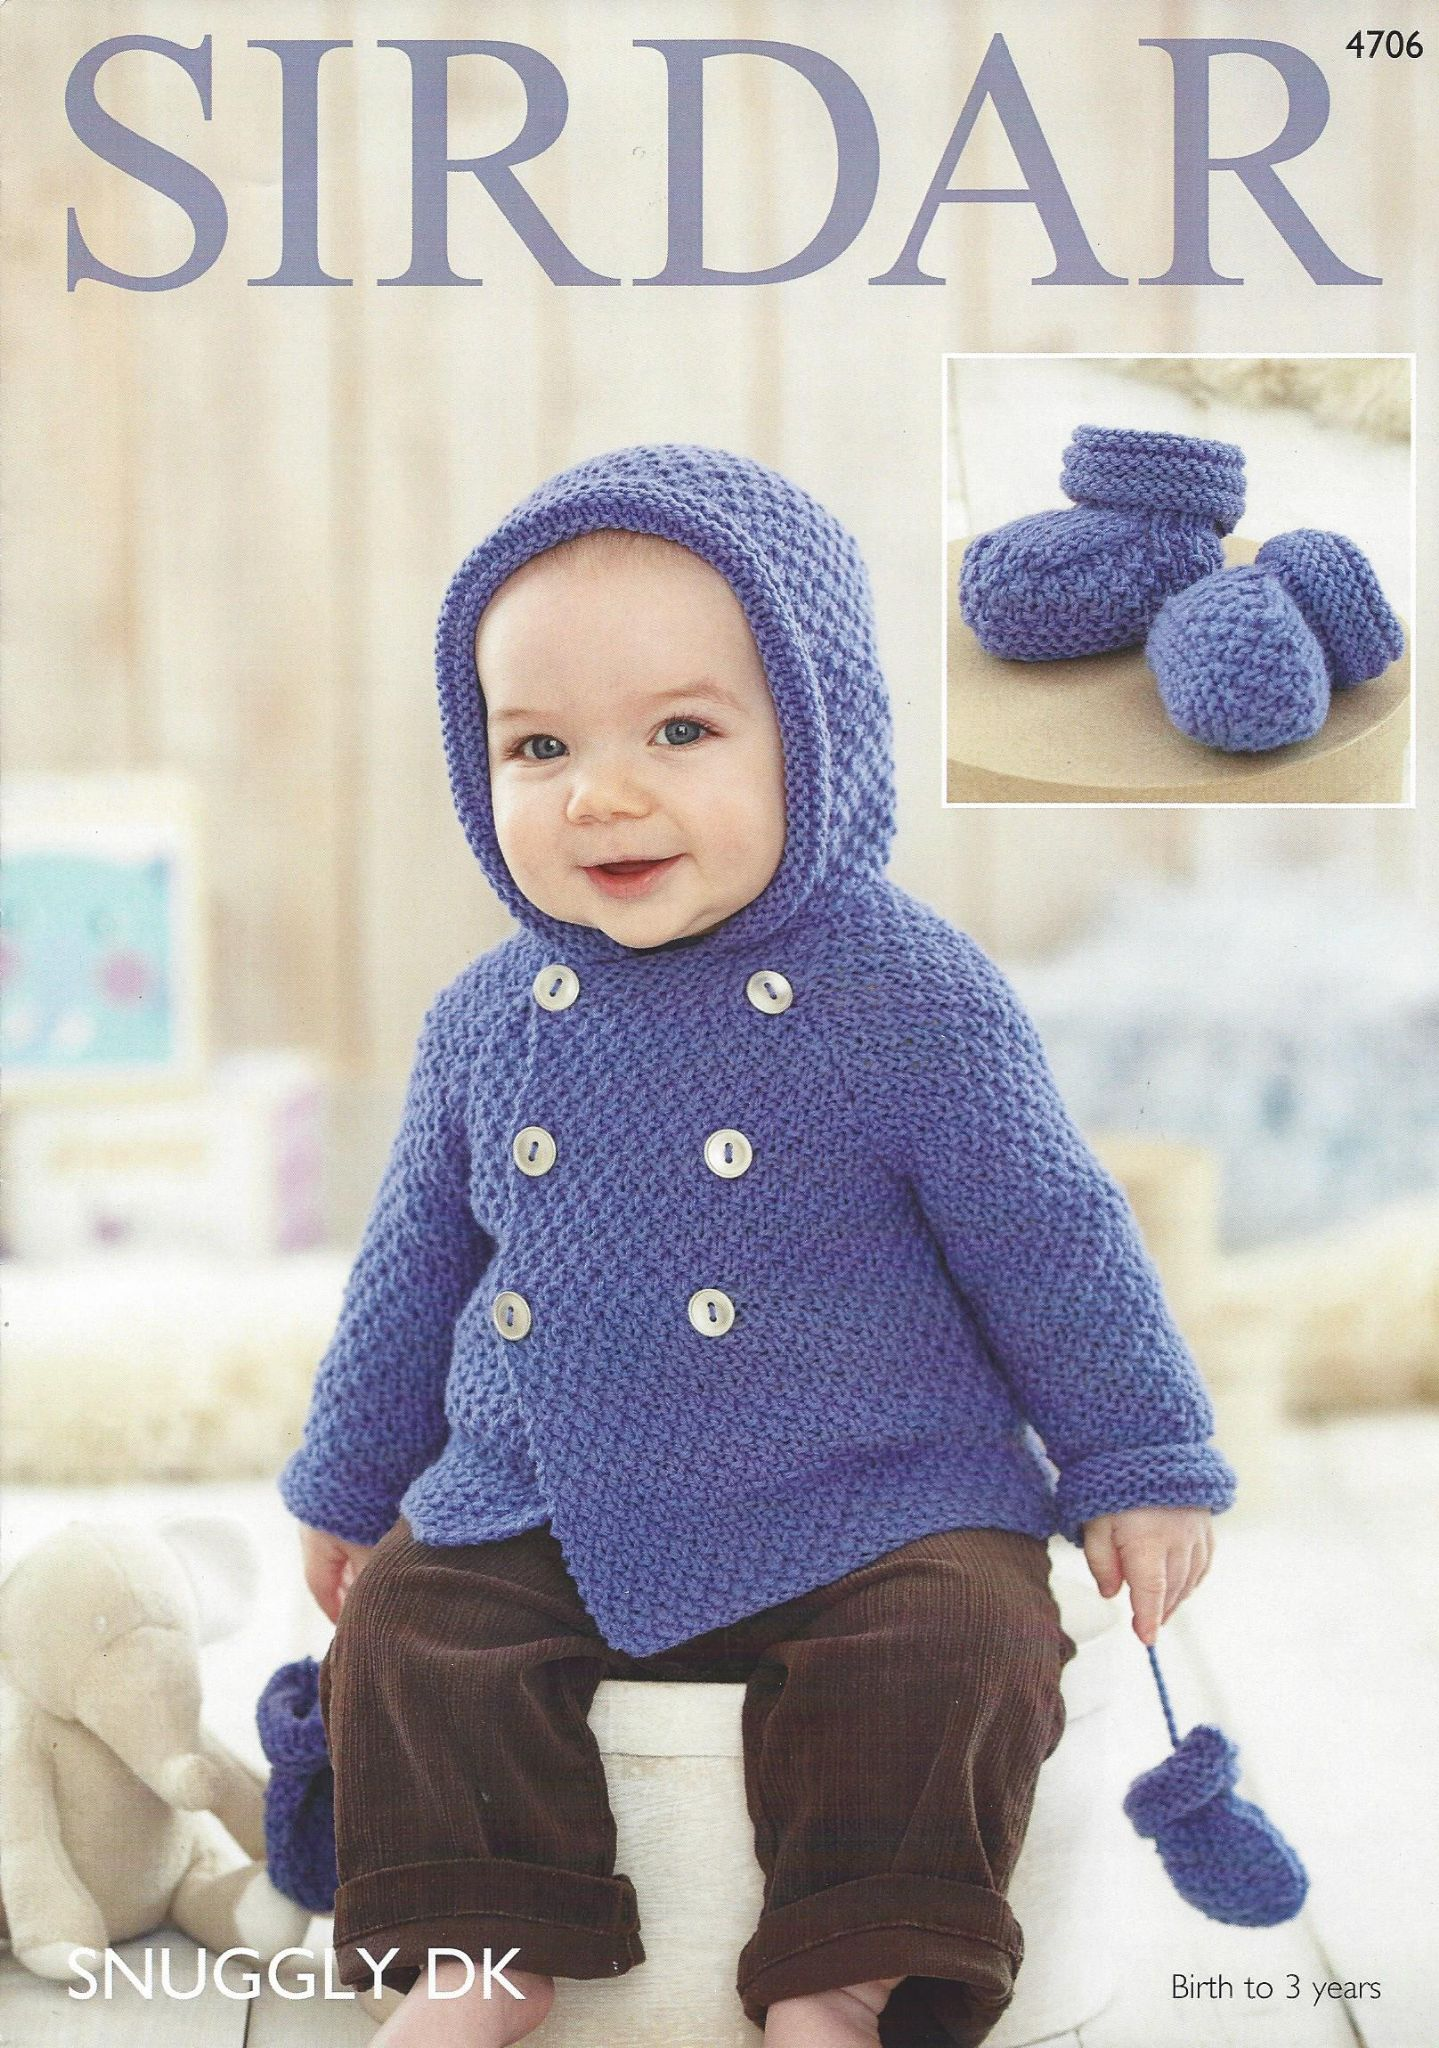 Sirdar Knitting Pattern : Sirdar Snuggly DK - 4706 Baby Boy s Coat Mittens & Botees Knitting Pattern